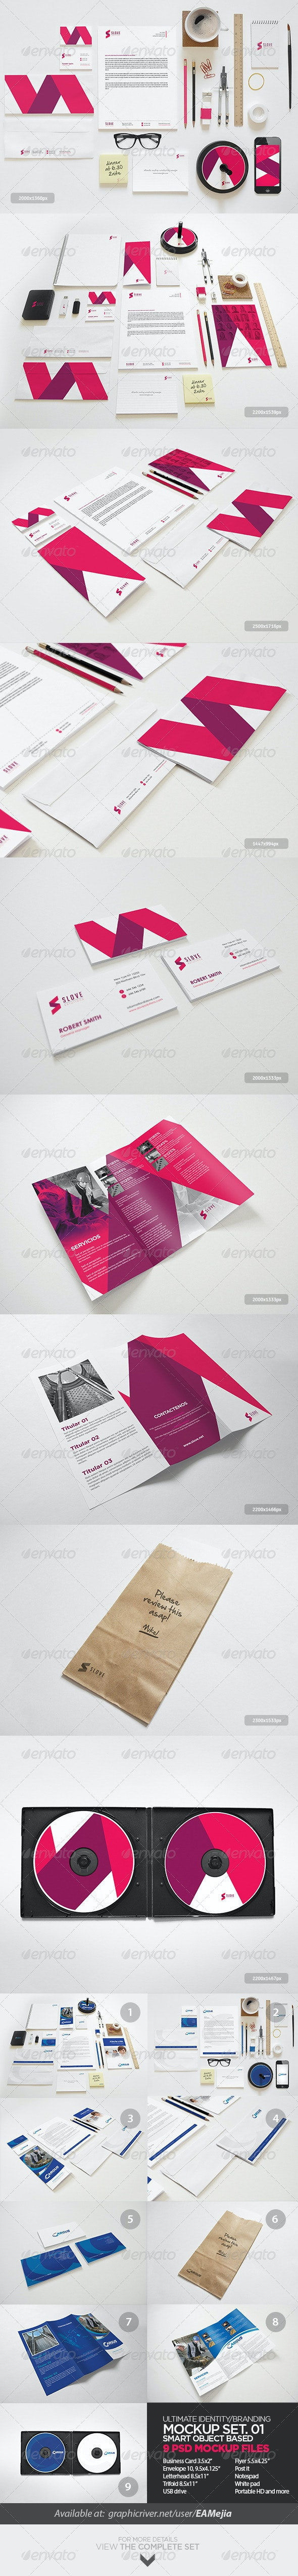 Ultimate Identity & Branding Mock-up Set. 01 - Print Product Mock-Ups